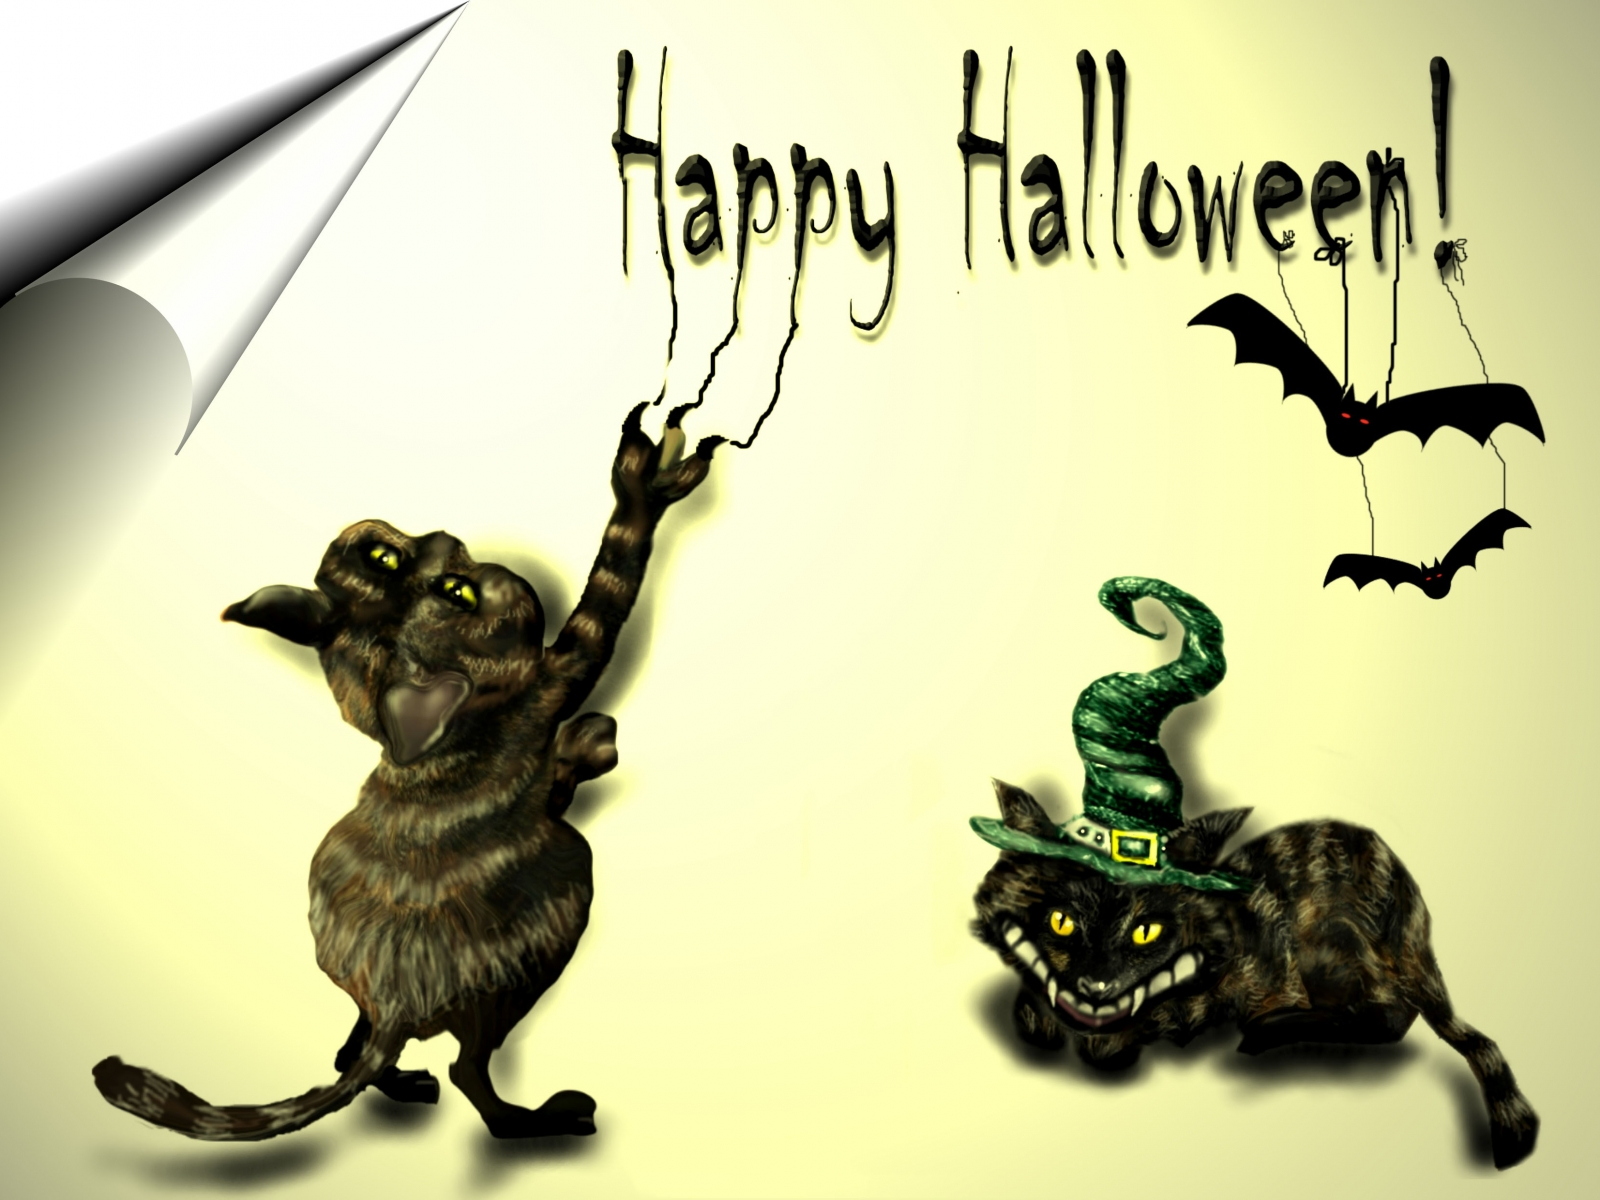 Happy-Halloween-text-black-cats-bat-theme-texted-picture-for-facebook-whatsapp.png